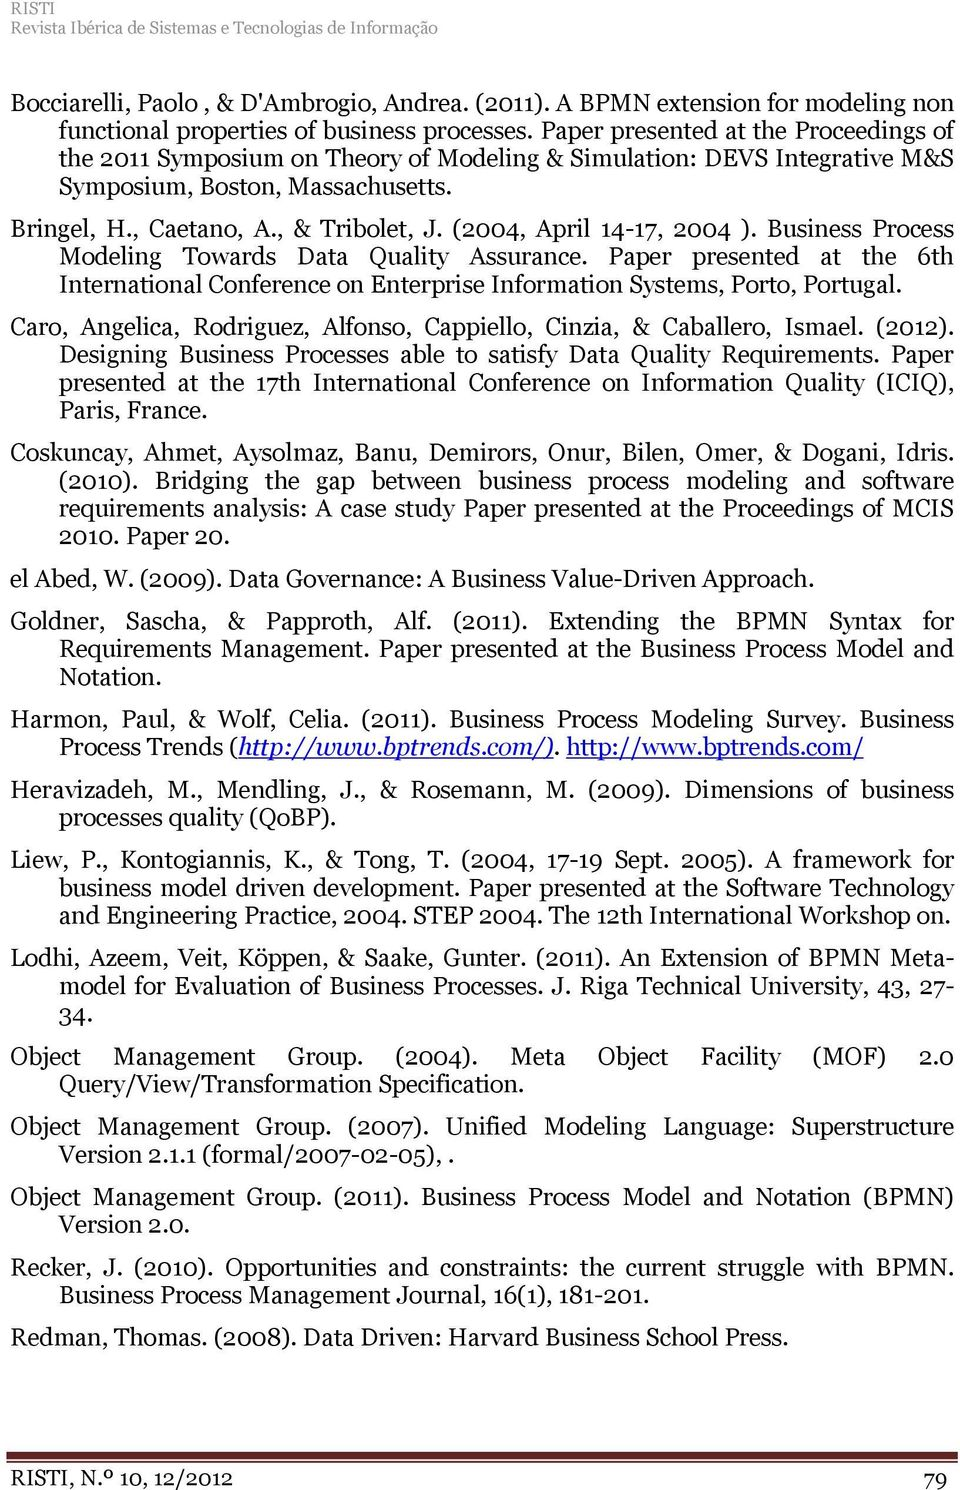 (2004, April 14-17, 2004 ). Business Process Modeling Towards Data Quality Assurance. Paper presented at the 6th International Conference on Enterprise Information Systems, Porto, Portugal.